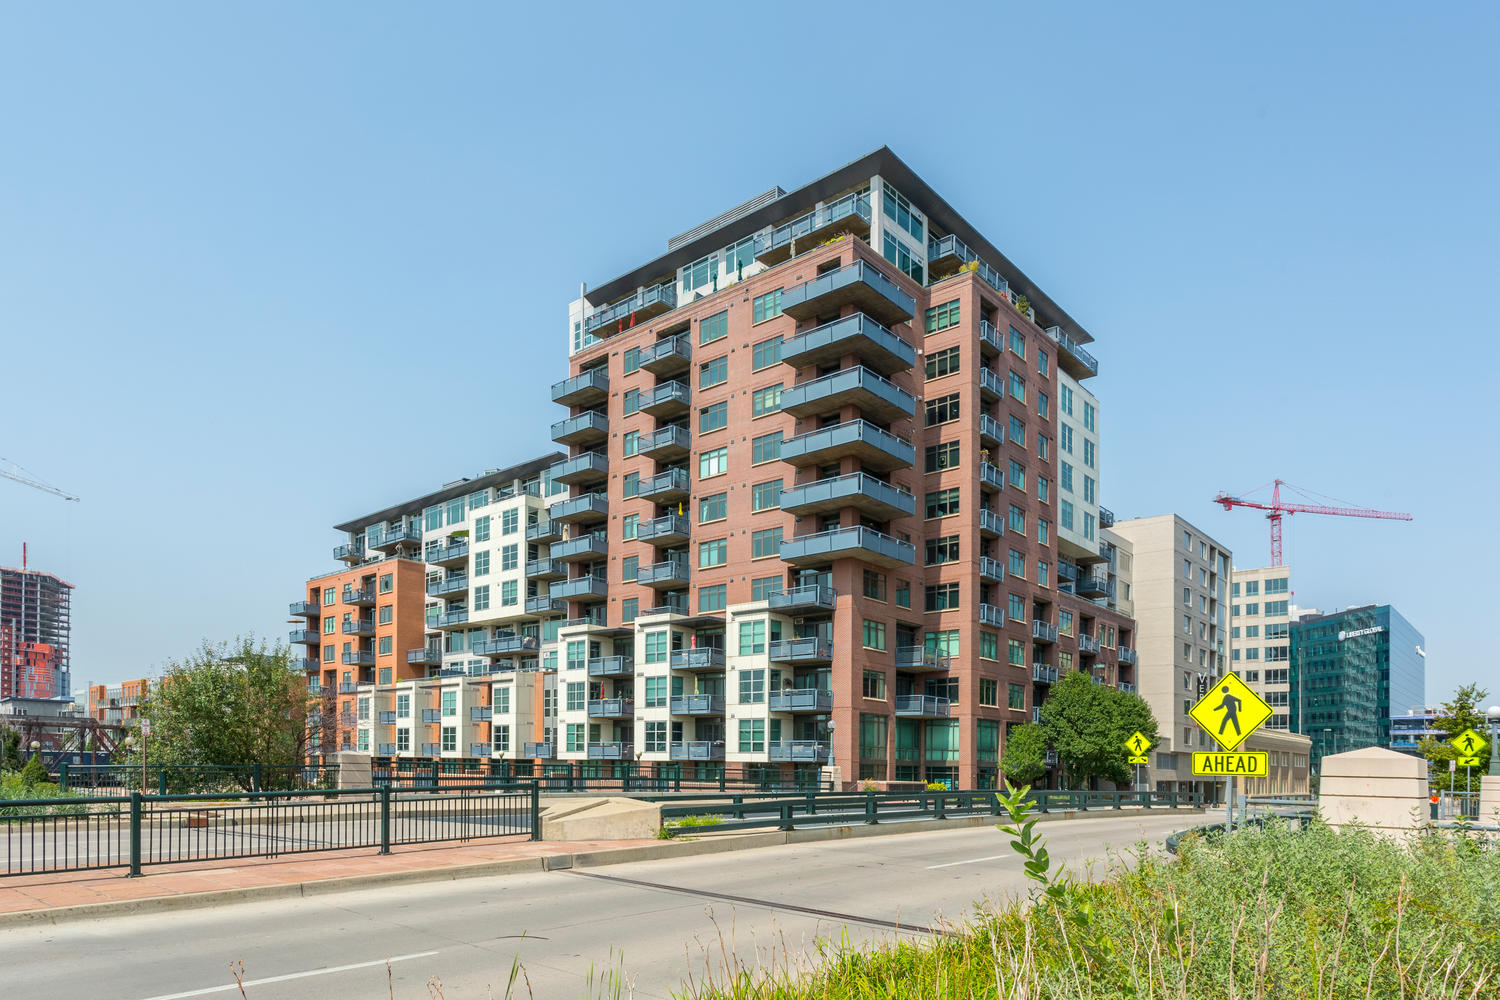 Single Family Home for Sale at A View From Waterside Lofts! 1401 Wewatta Street 308 Denver, Colorado, 80202 United States